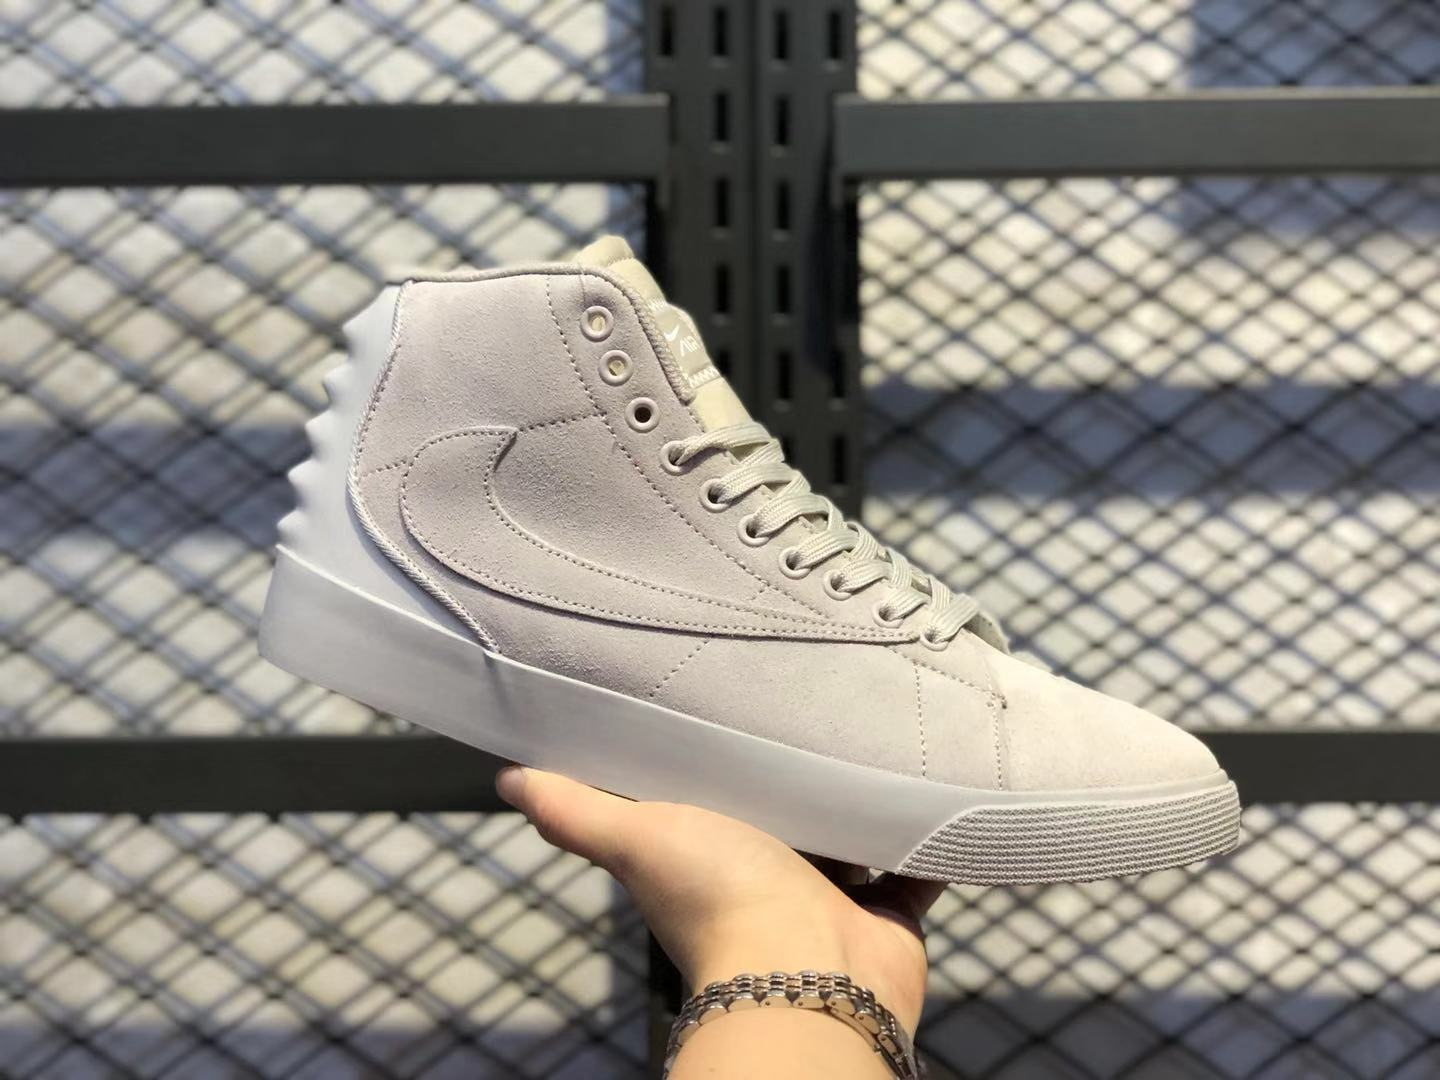 Nike Blazer Mid Grey/Cloud White Top Quality Lifestyle Shoes UP7799-002